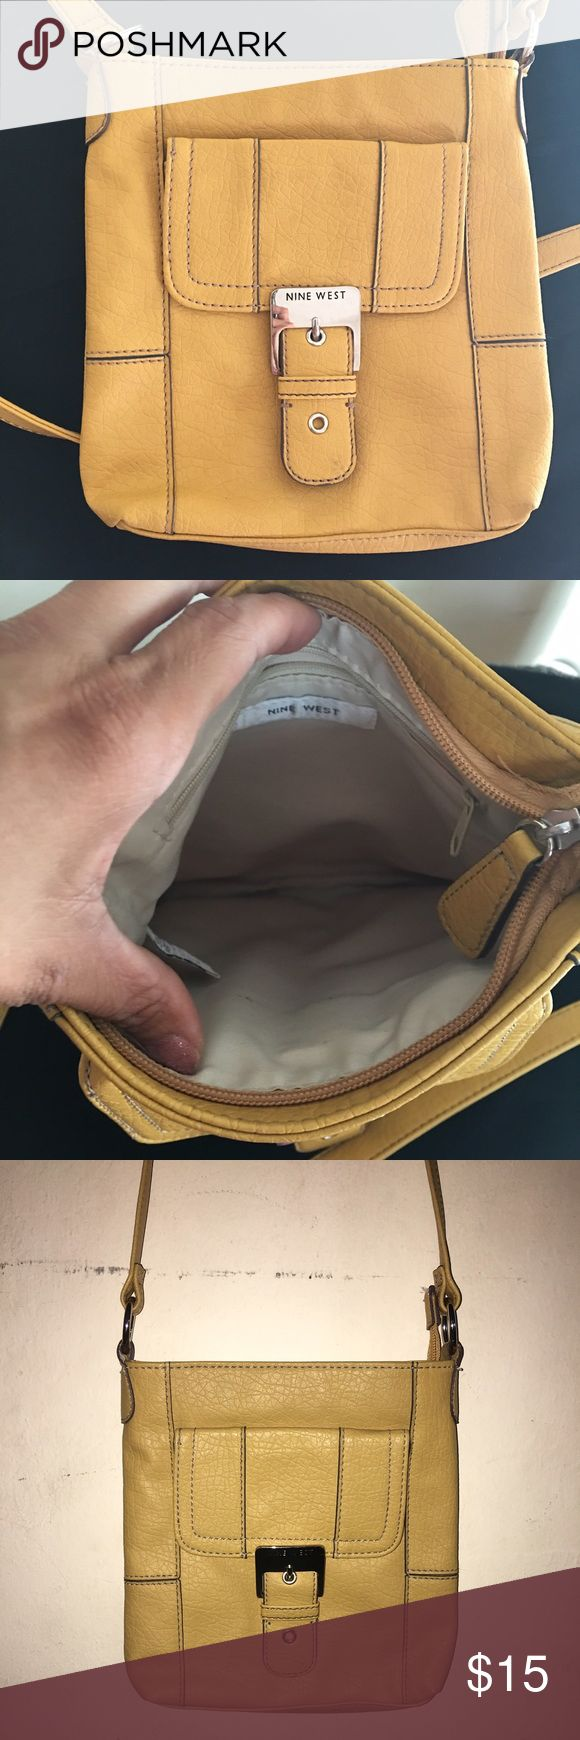 Nine West purse, like new Very nice Nine West purse, like new condition, worn only once, shoulder or cross body purse. Adjustable strap. Bundle to save more! Nine West Bags Shoulder Bags